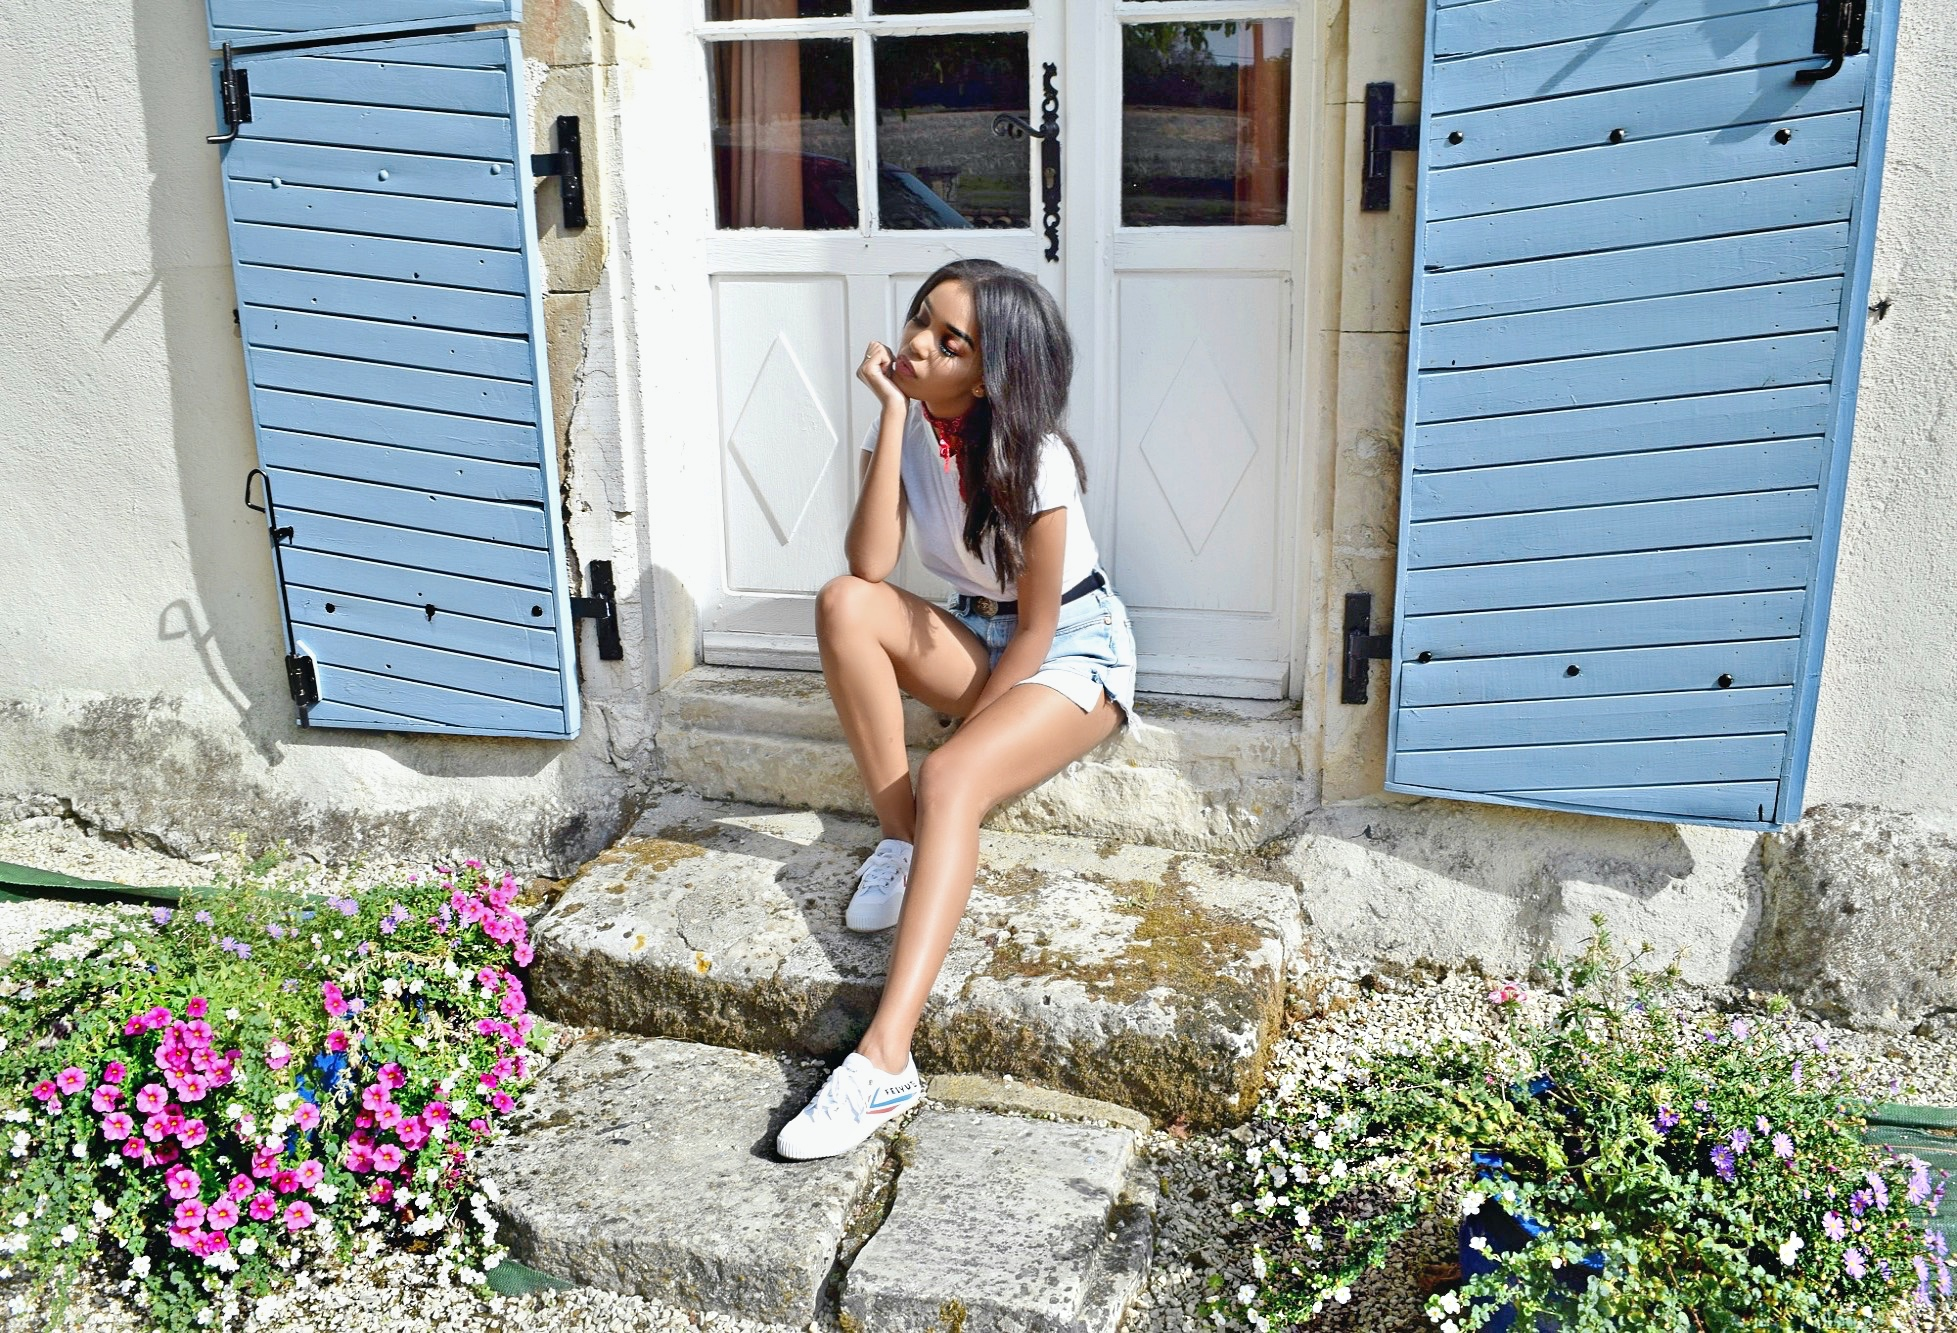 Somewhere In France // Empure, Ruffec, The Charente France // Re-Done Denim Cutoff Shorts // Are You Am I Crop Tshirt // Feiyue Sneakers // Chanel Western Belt // France Travel Diary // Los Angeles Fashion Blogger Daphne Blunt: To Style, With Love